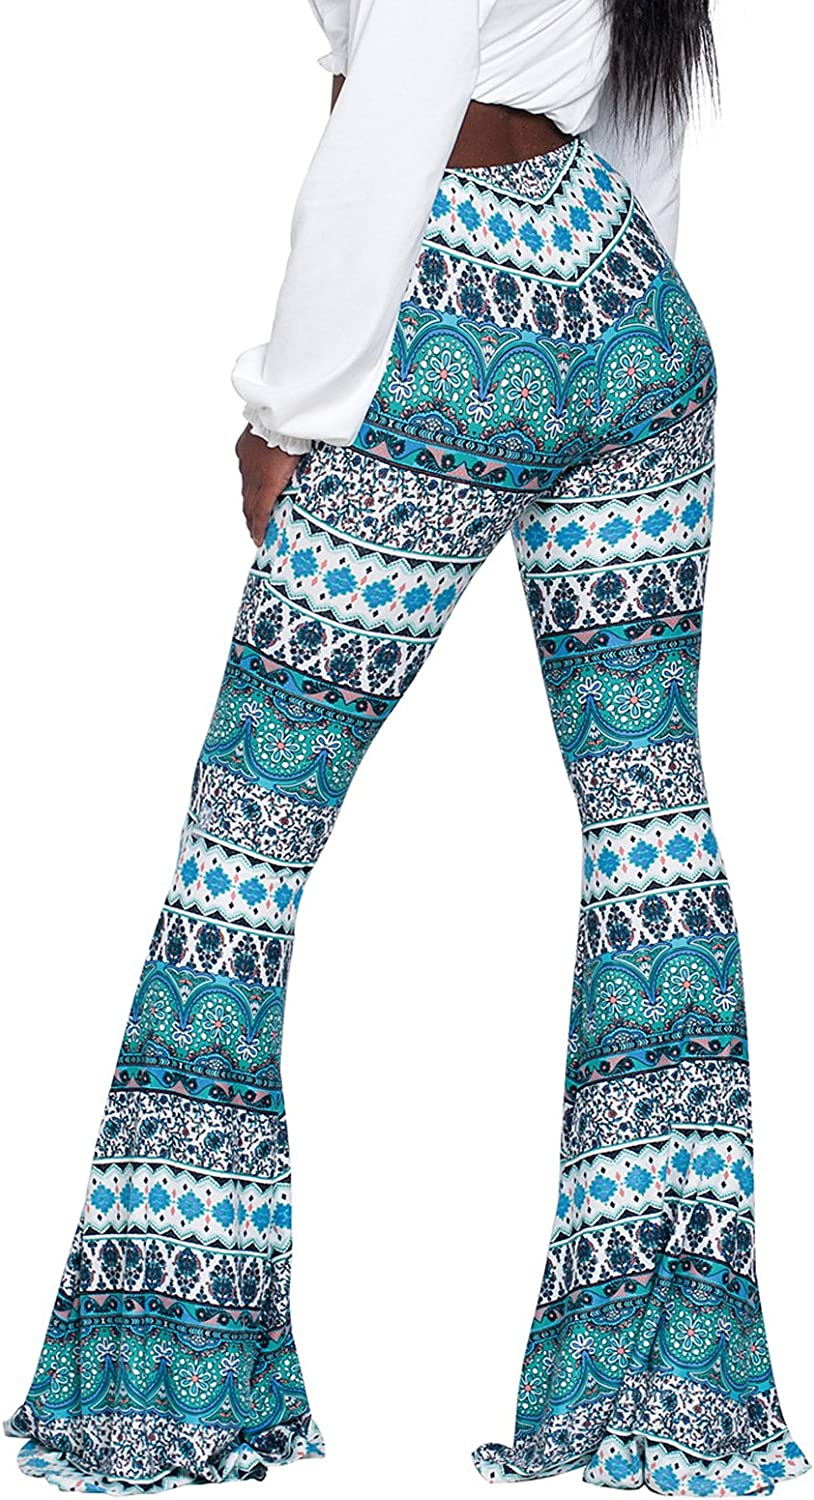 Govc Women Casual Print Stretchy Special sale item Palazzo Bottom Flare Bell price Skinn